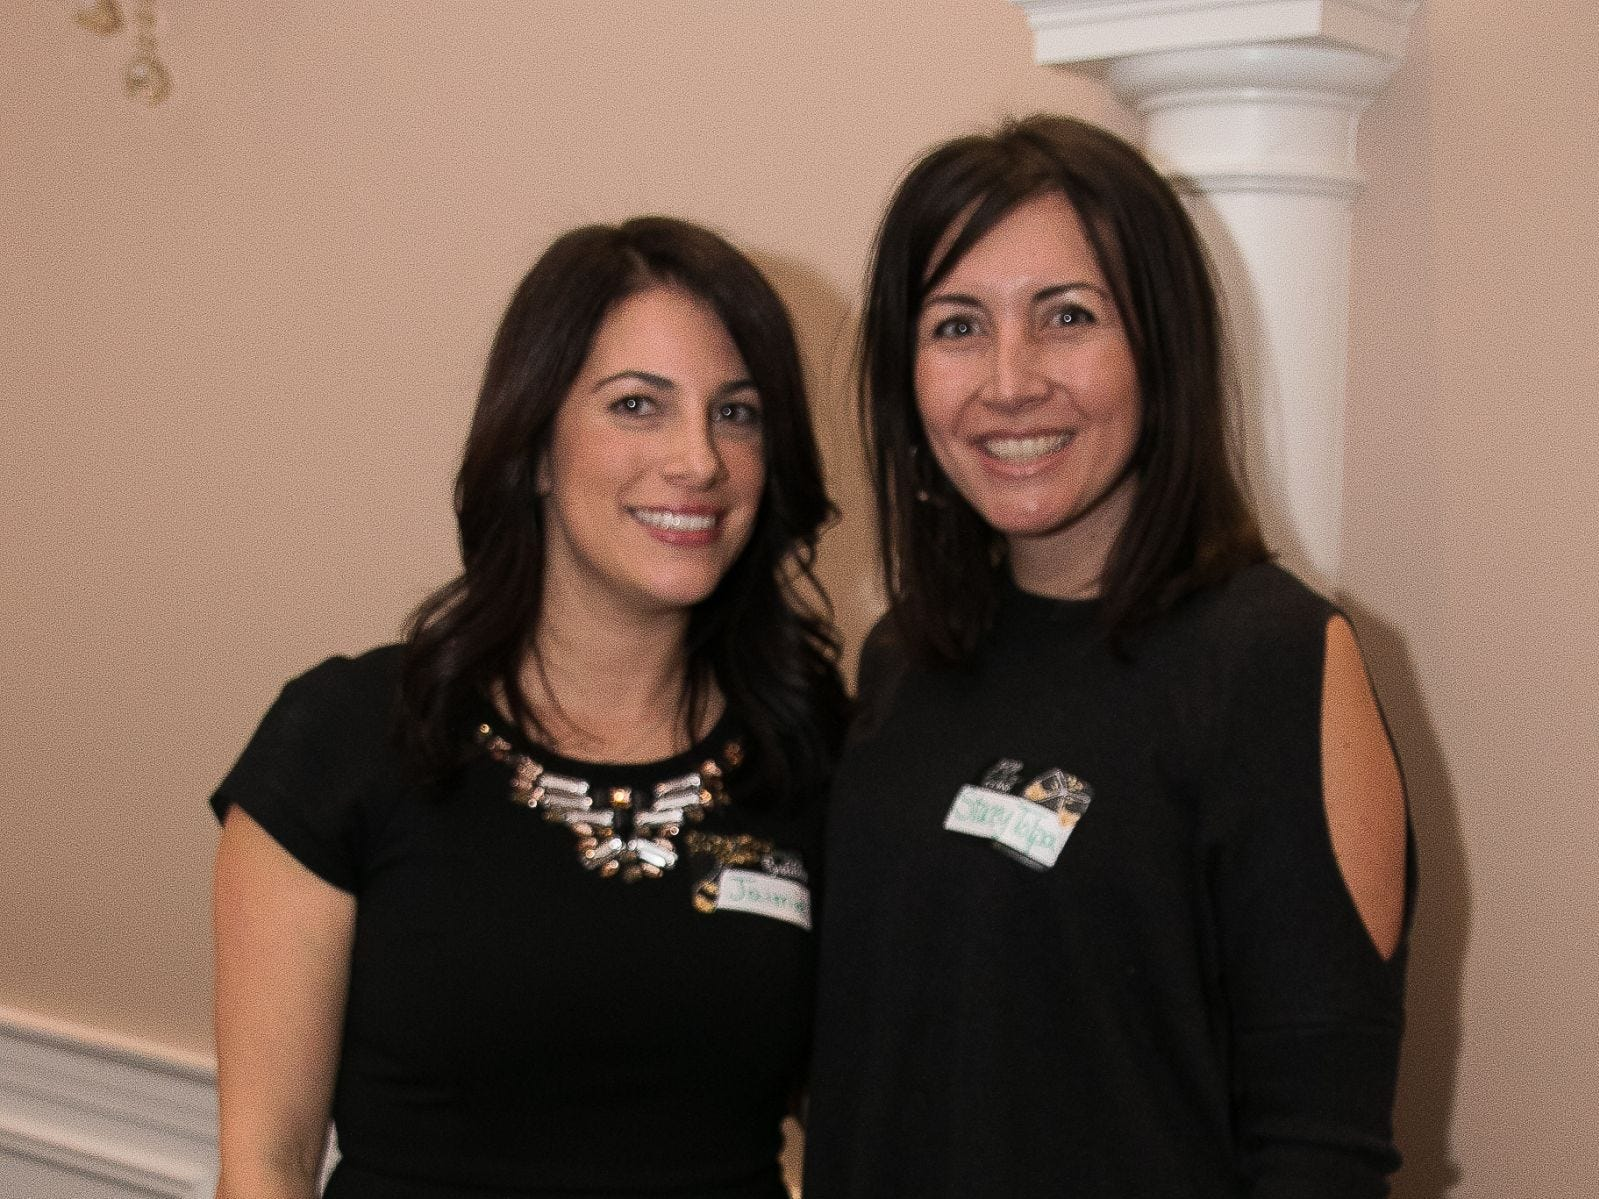 Jaimie Sirianni, Stacey Tolpa. The Saddle River Valley Junior Woman's Club held an inductee dinnerfor incoming members at Bellisimo Restaurante in Montvale. 01/23/2019